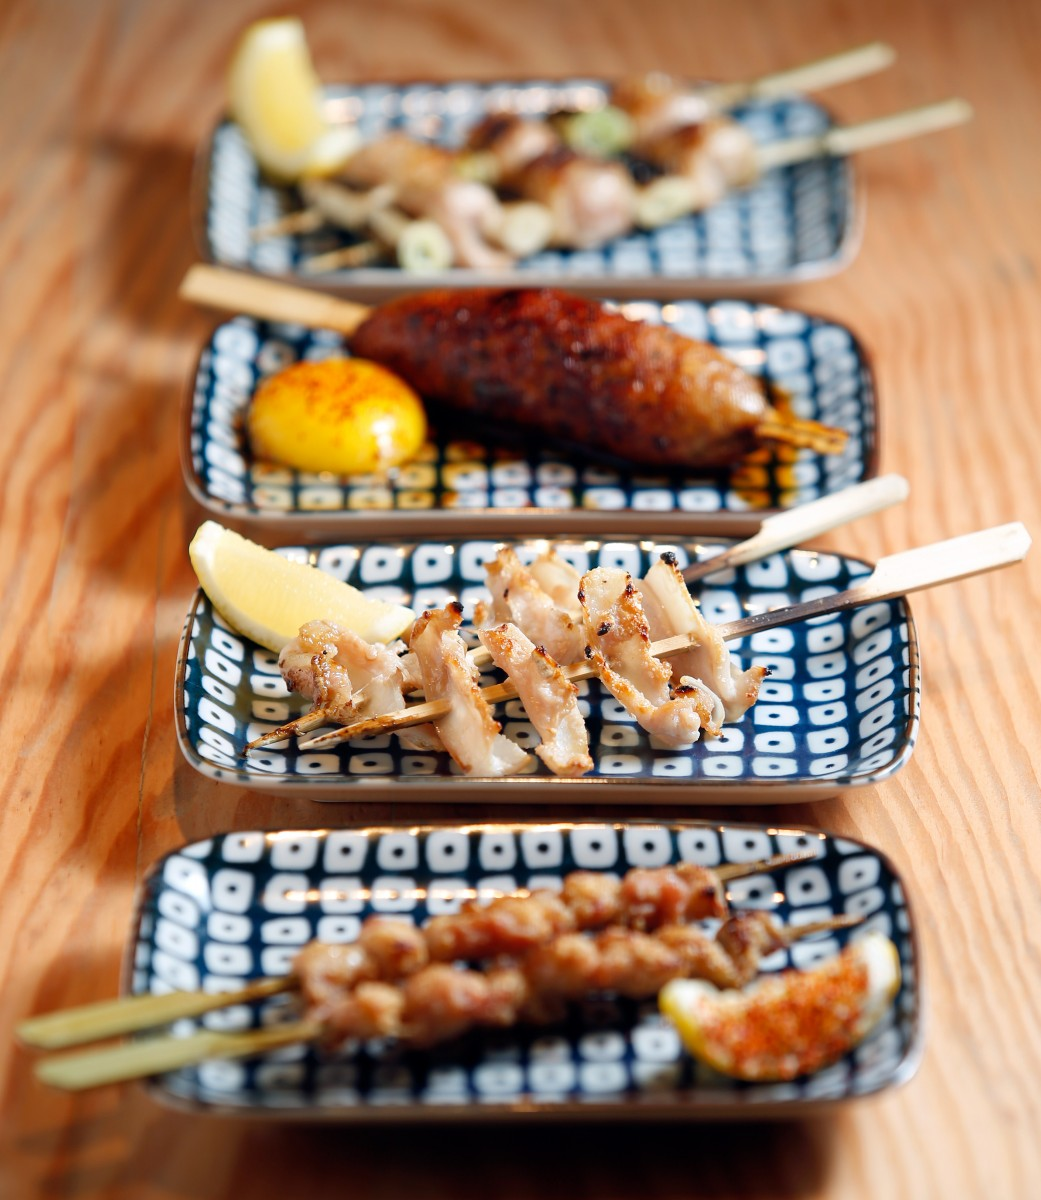 A selection of robatayaki / yakitori, from front to rear: kawa (chicken skin), yagen nonkotsu (chicken cartilage), Tsukune (chicken meatball) with egg yolk, and momoshiniku (boneless chicken thigh) with negi (Welsh onion), at Miminashi, a Japanese izakaya, in Napa, California on Tuesday, August 30, 2016. (Alvin Jornada / The Press Democrat)